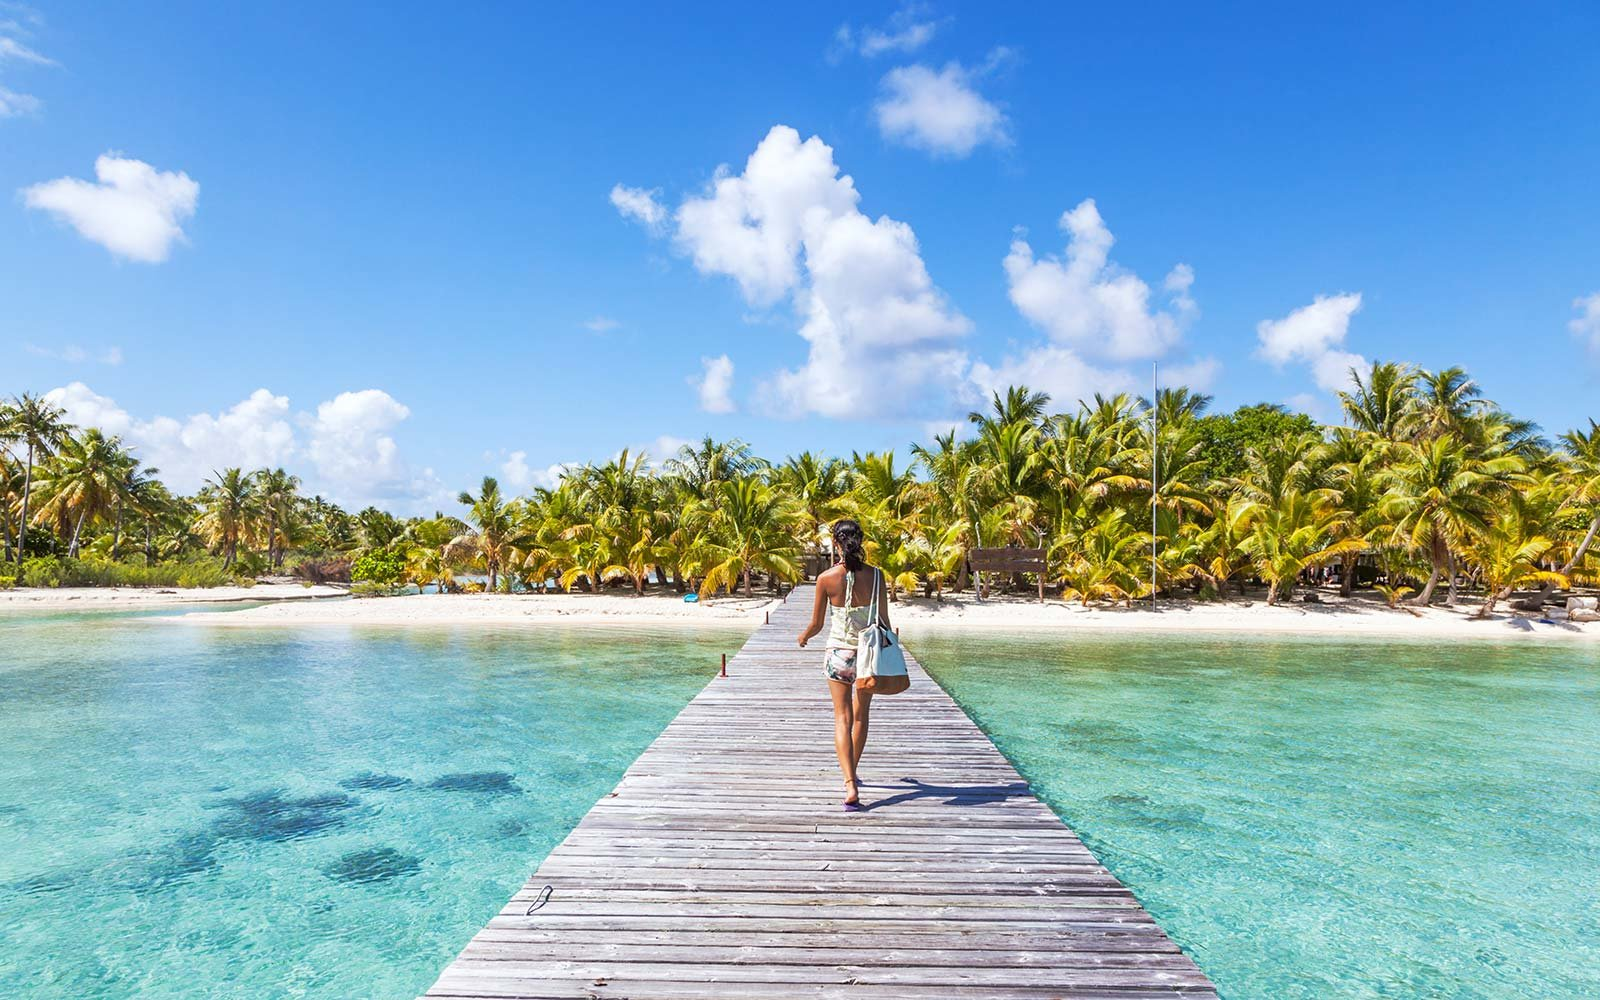 Tourist walking on jetty, Tikehau atoll, Tuamotu Archipelago, French Polynesia, Oceania Instagram Tips Captions